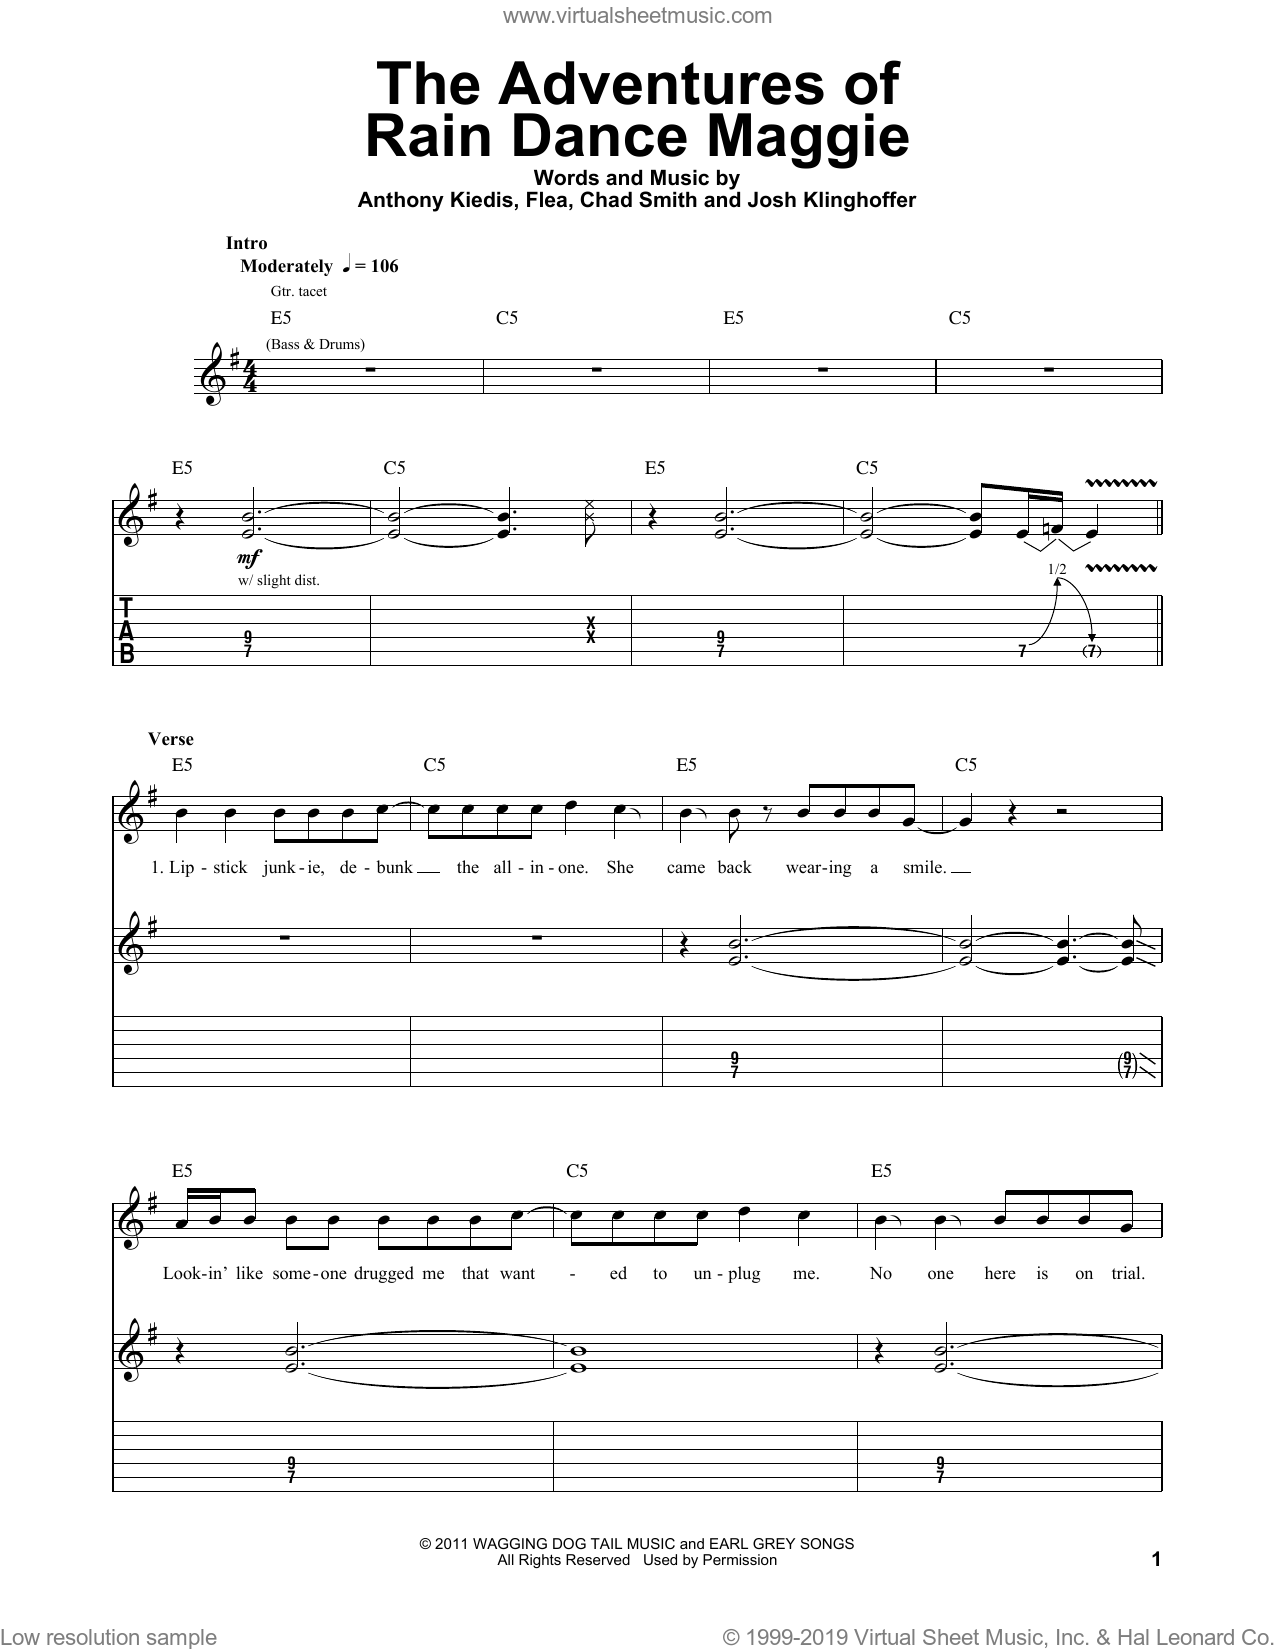 The Adventures Of Rain Dance Maggie sheet music for guitar (tablature, play-along) by Red Hot Chili Peppers, Anthony Kiedis, Chad Smith, Flea and Josh Klinghoffer, intermediate